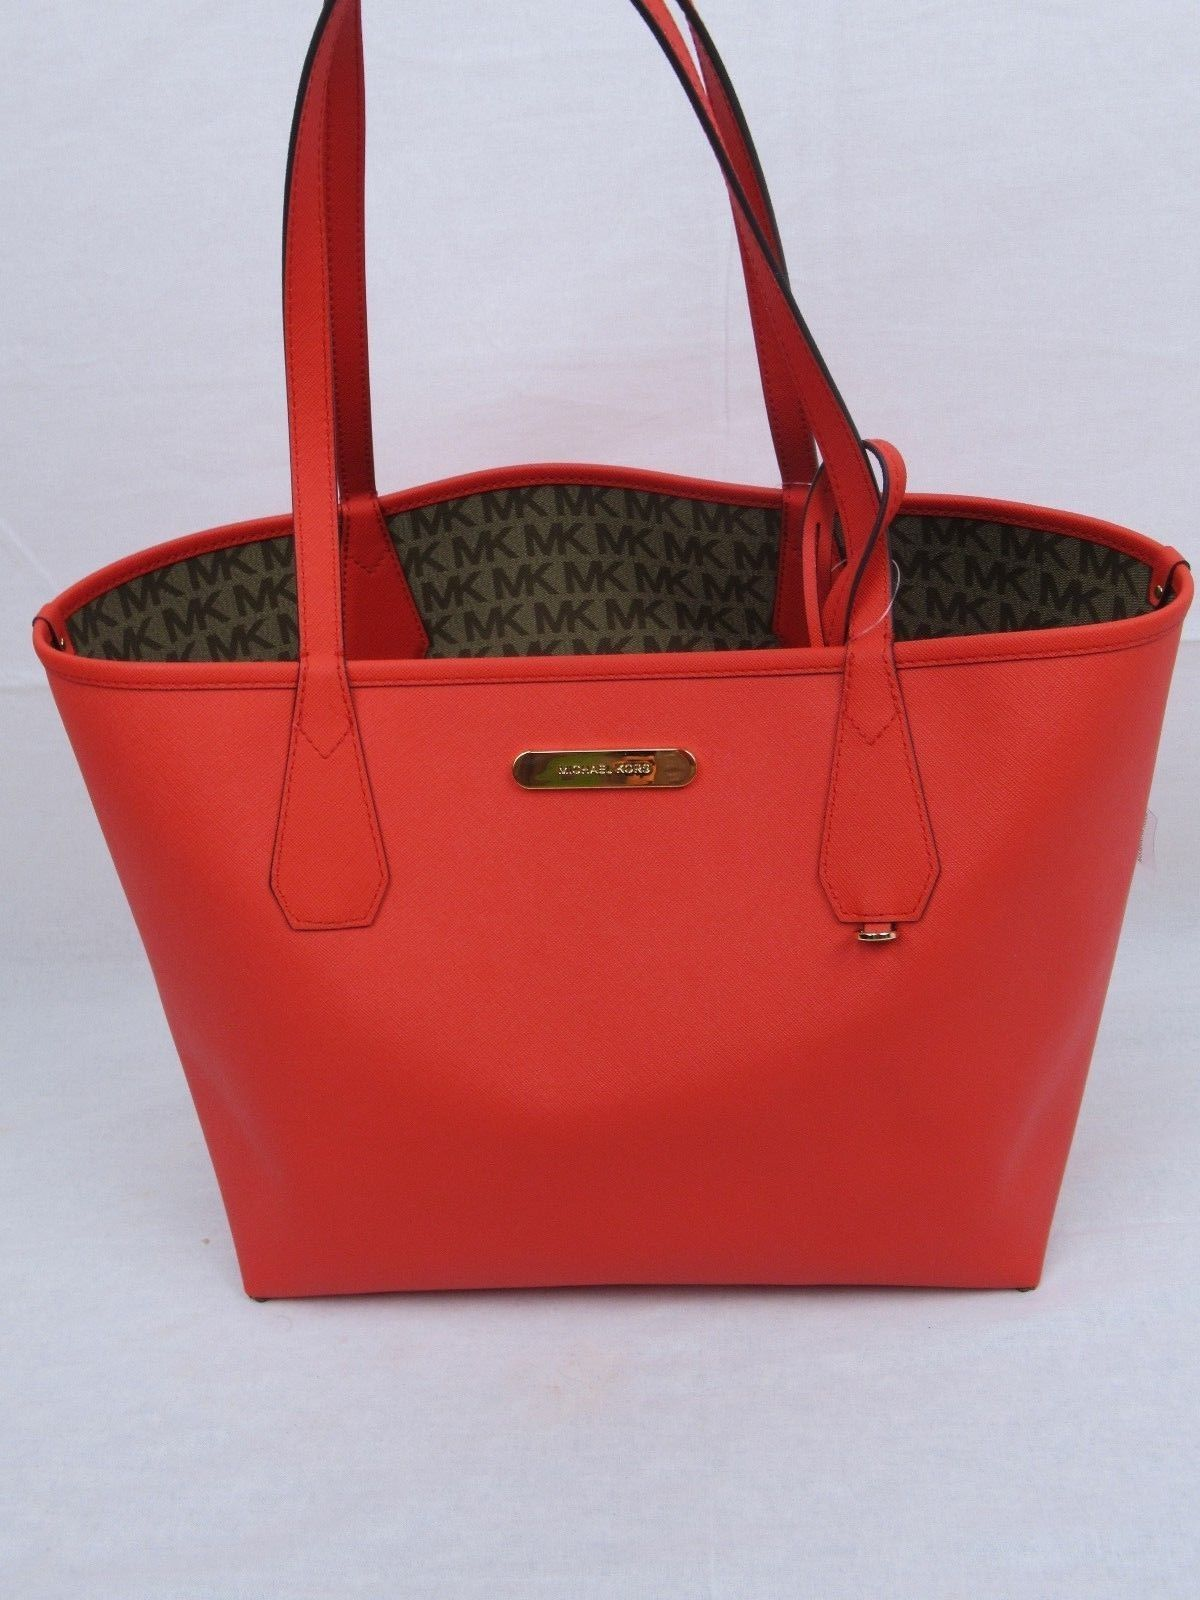 a0ffbfed9092 NWT MICHAEL KORS SIGNATURE CANDY LARGE REVERSIBLE TOTE BAG IN BG/EB/DK  SANGRIA